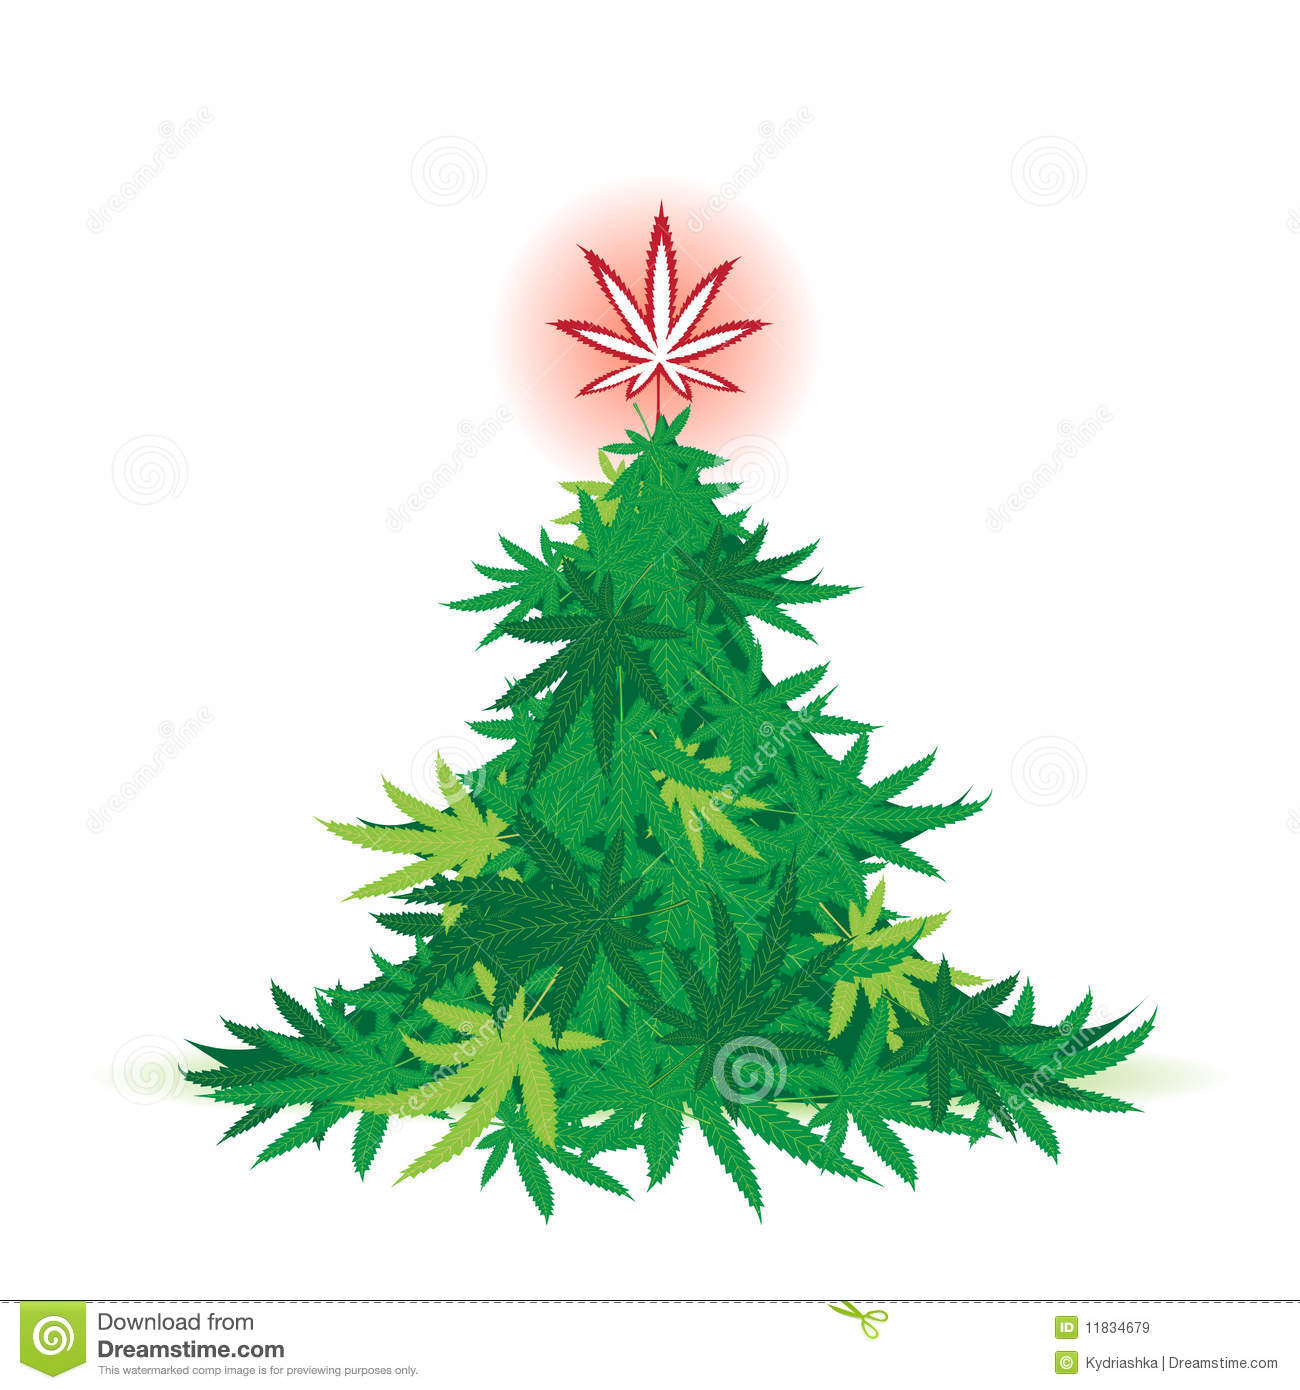 Christmas Tree Cannabis Leaf Royalty Free Stock Images